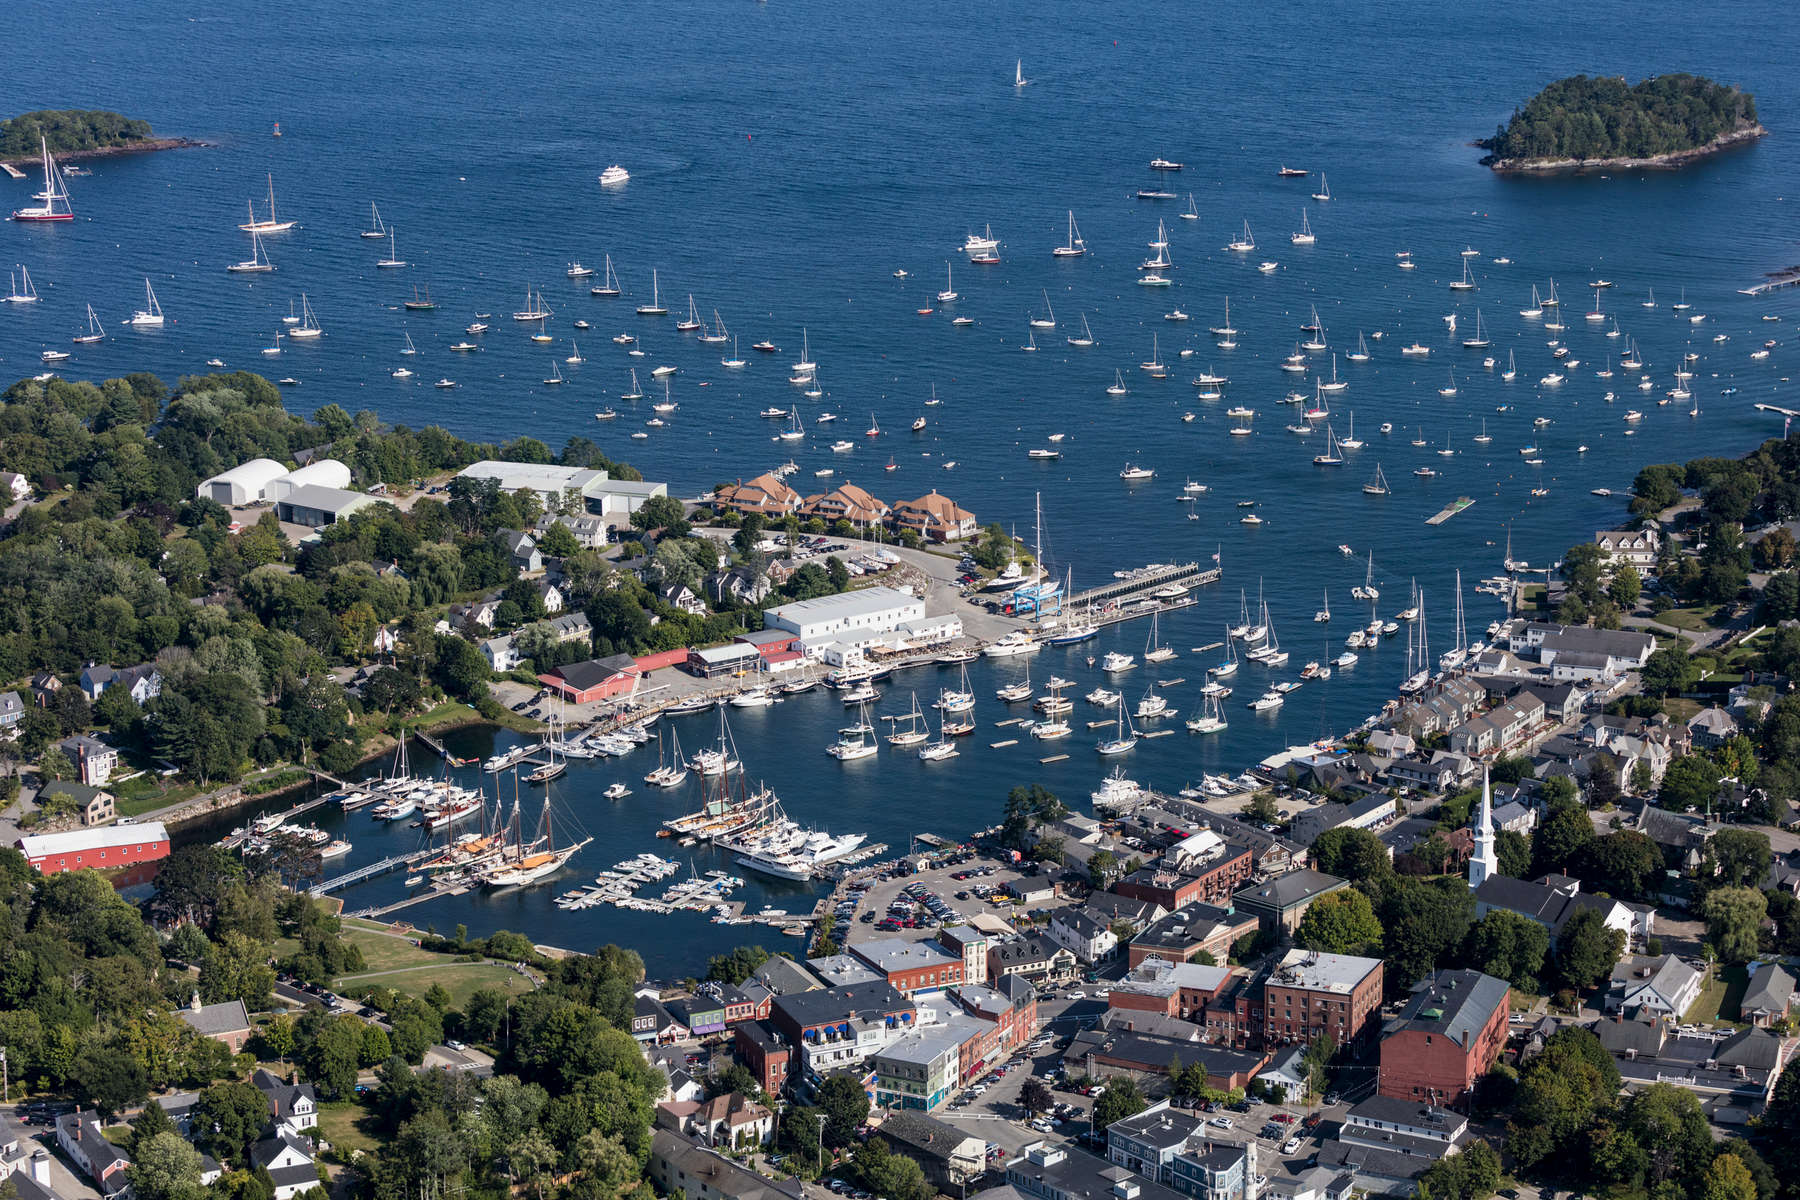 Protected Harbor and Waterfront, Camden, Maine 2018 (180902-0144)